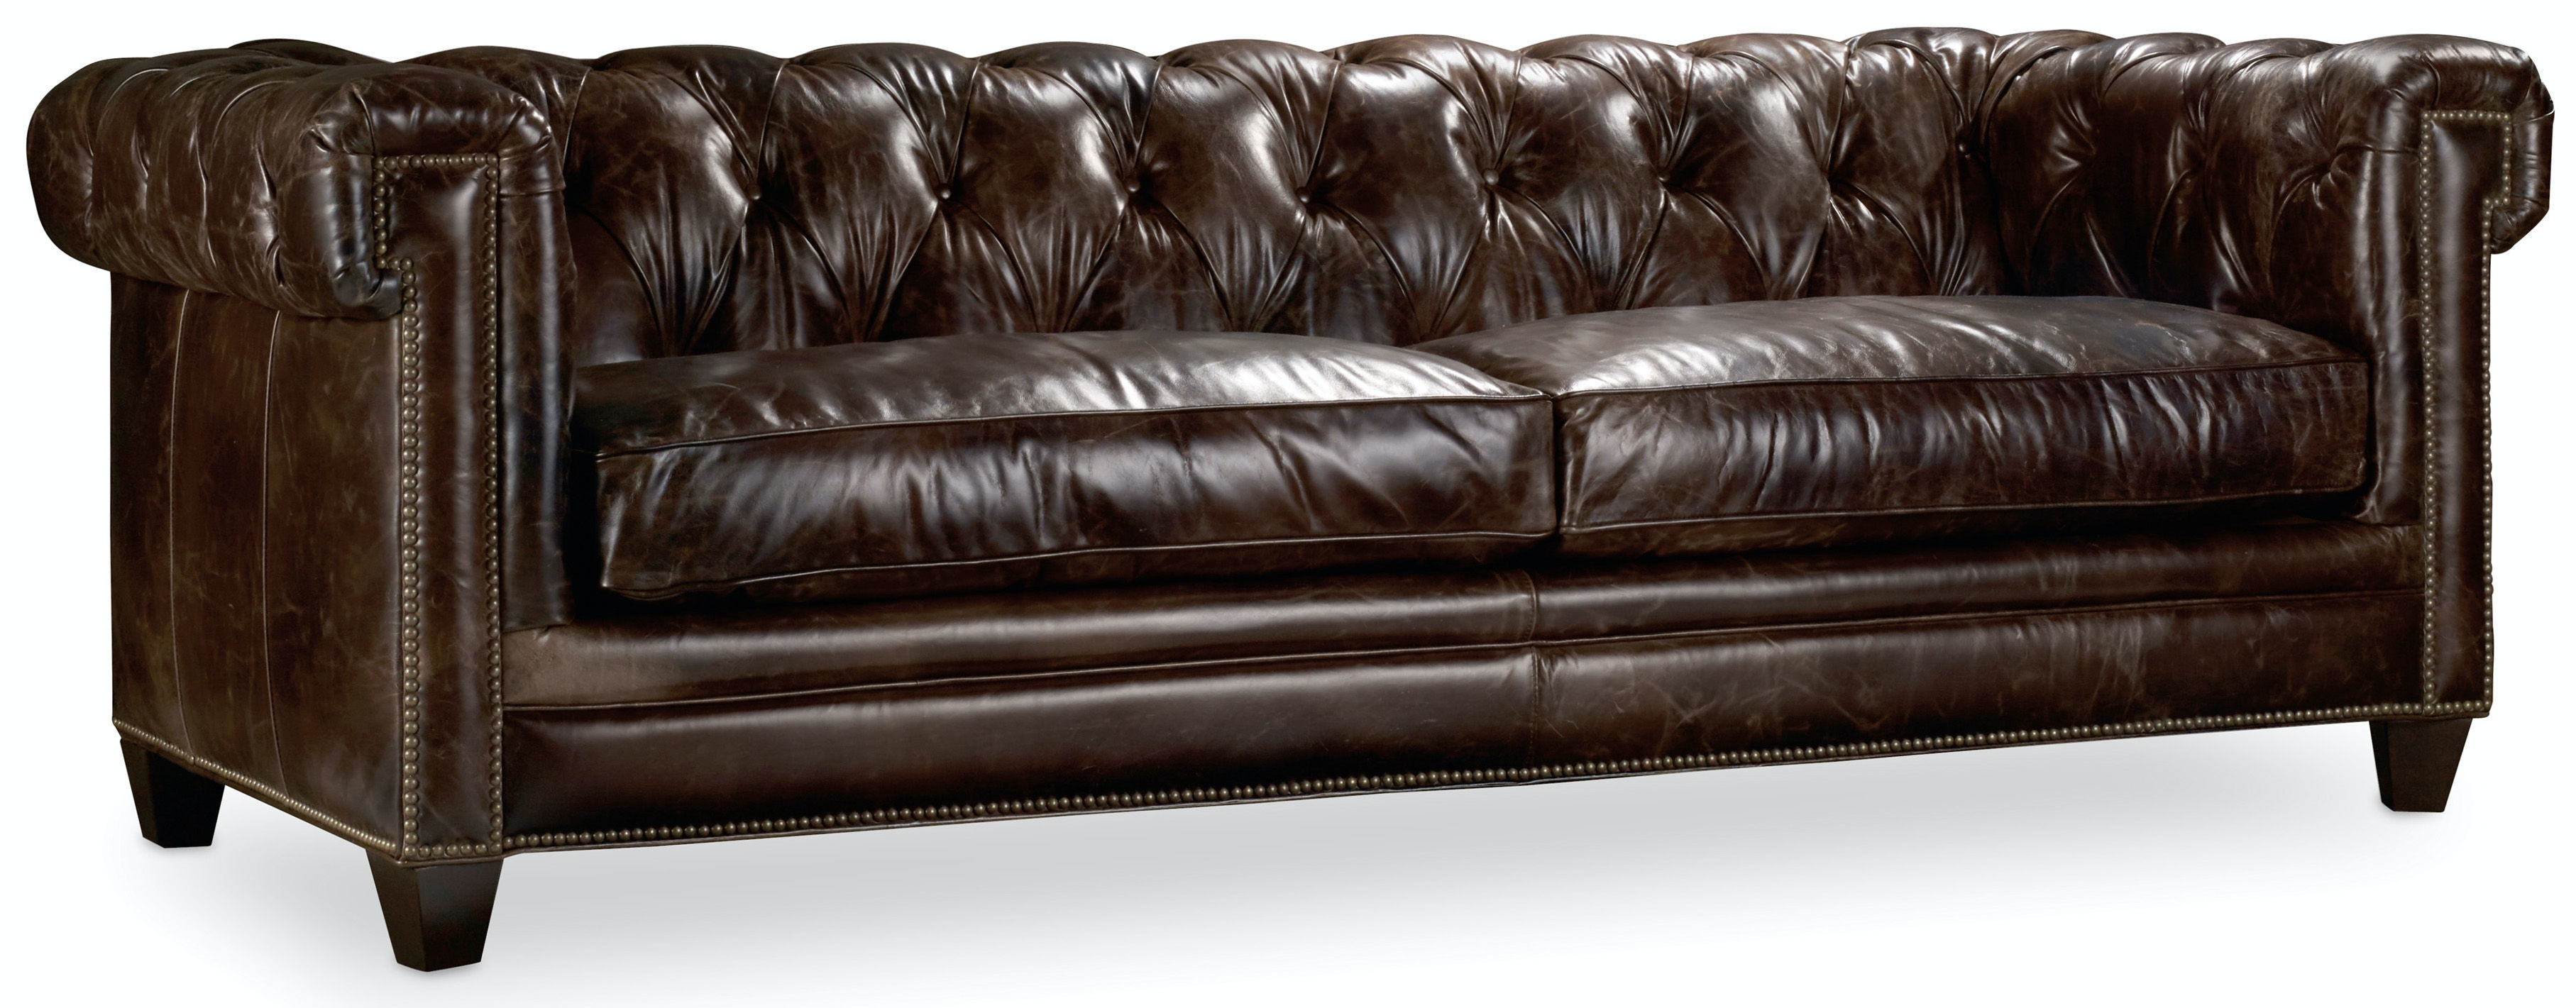 Hooker Furniture Chester Stationary Sofa SS195 03 089